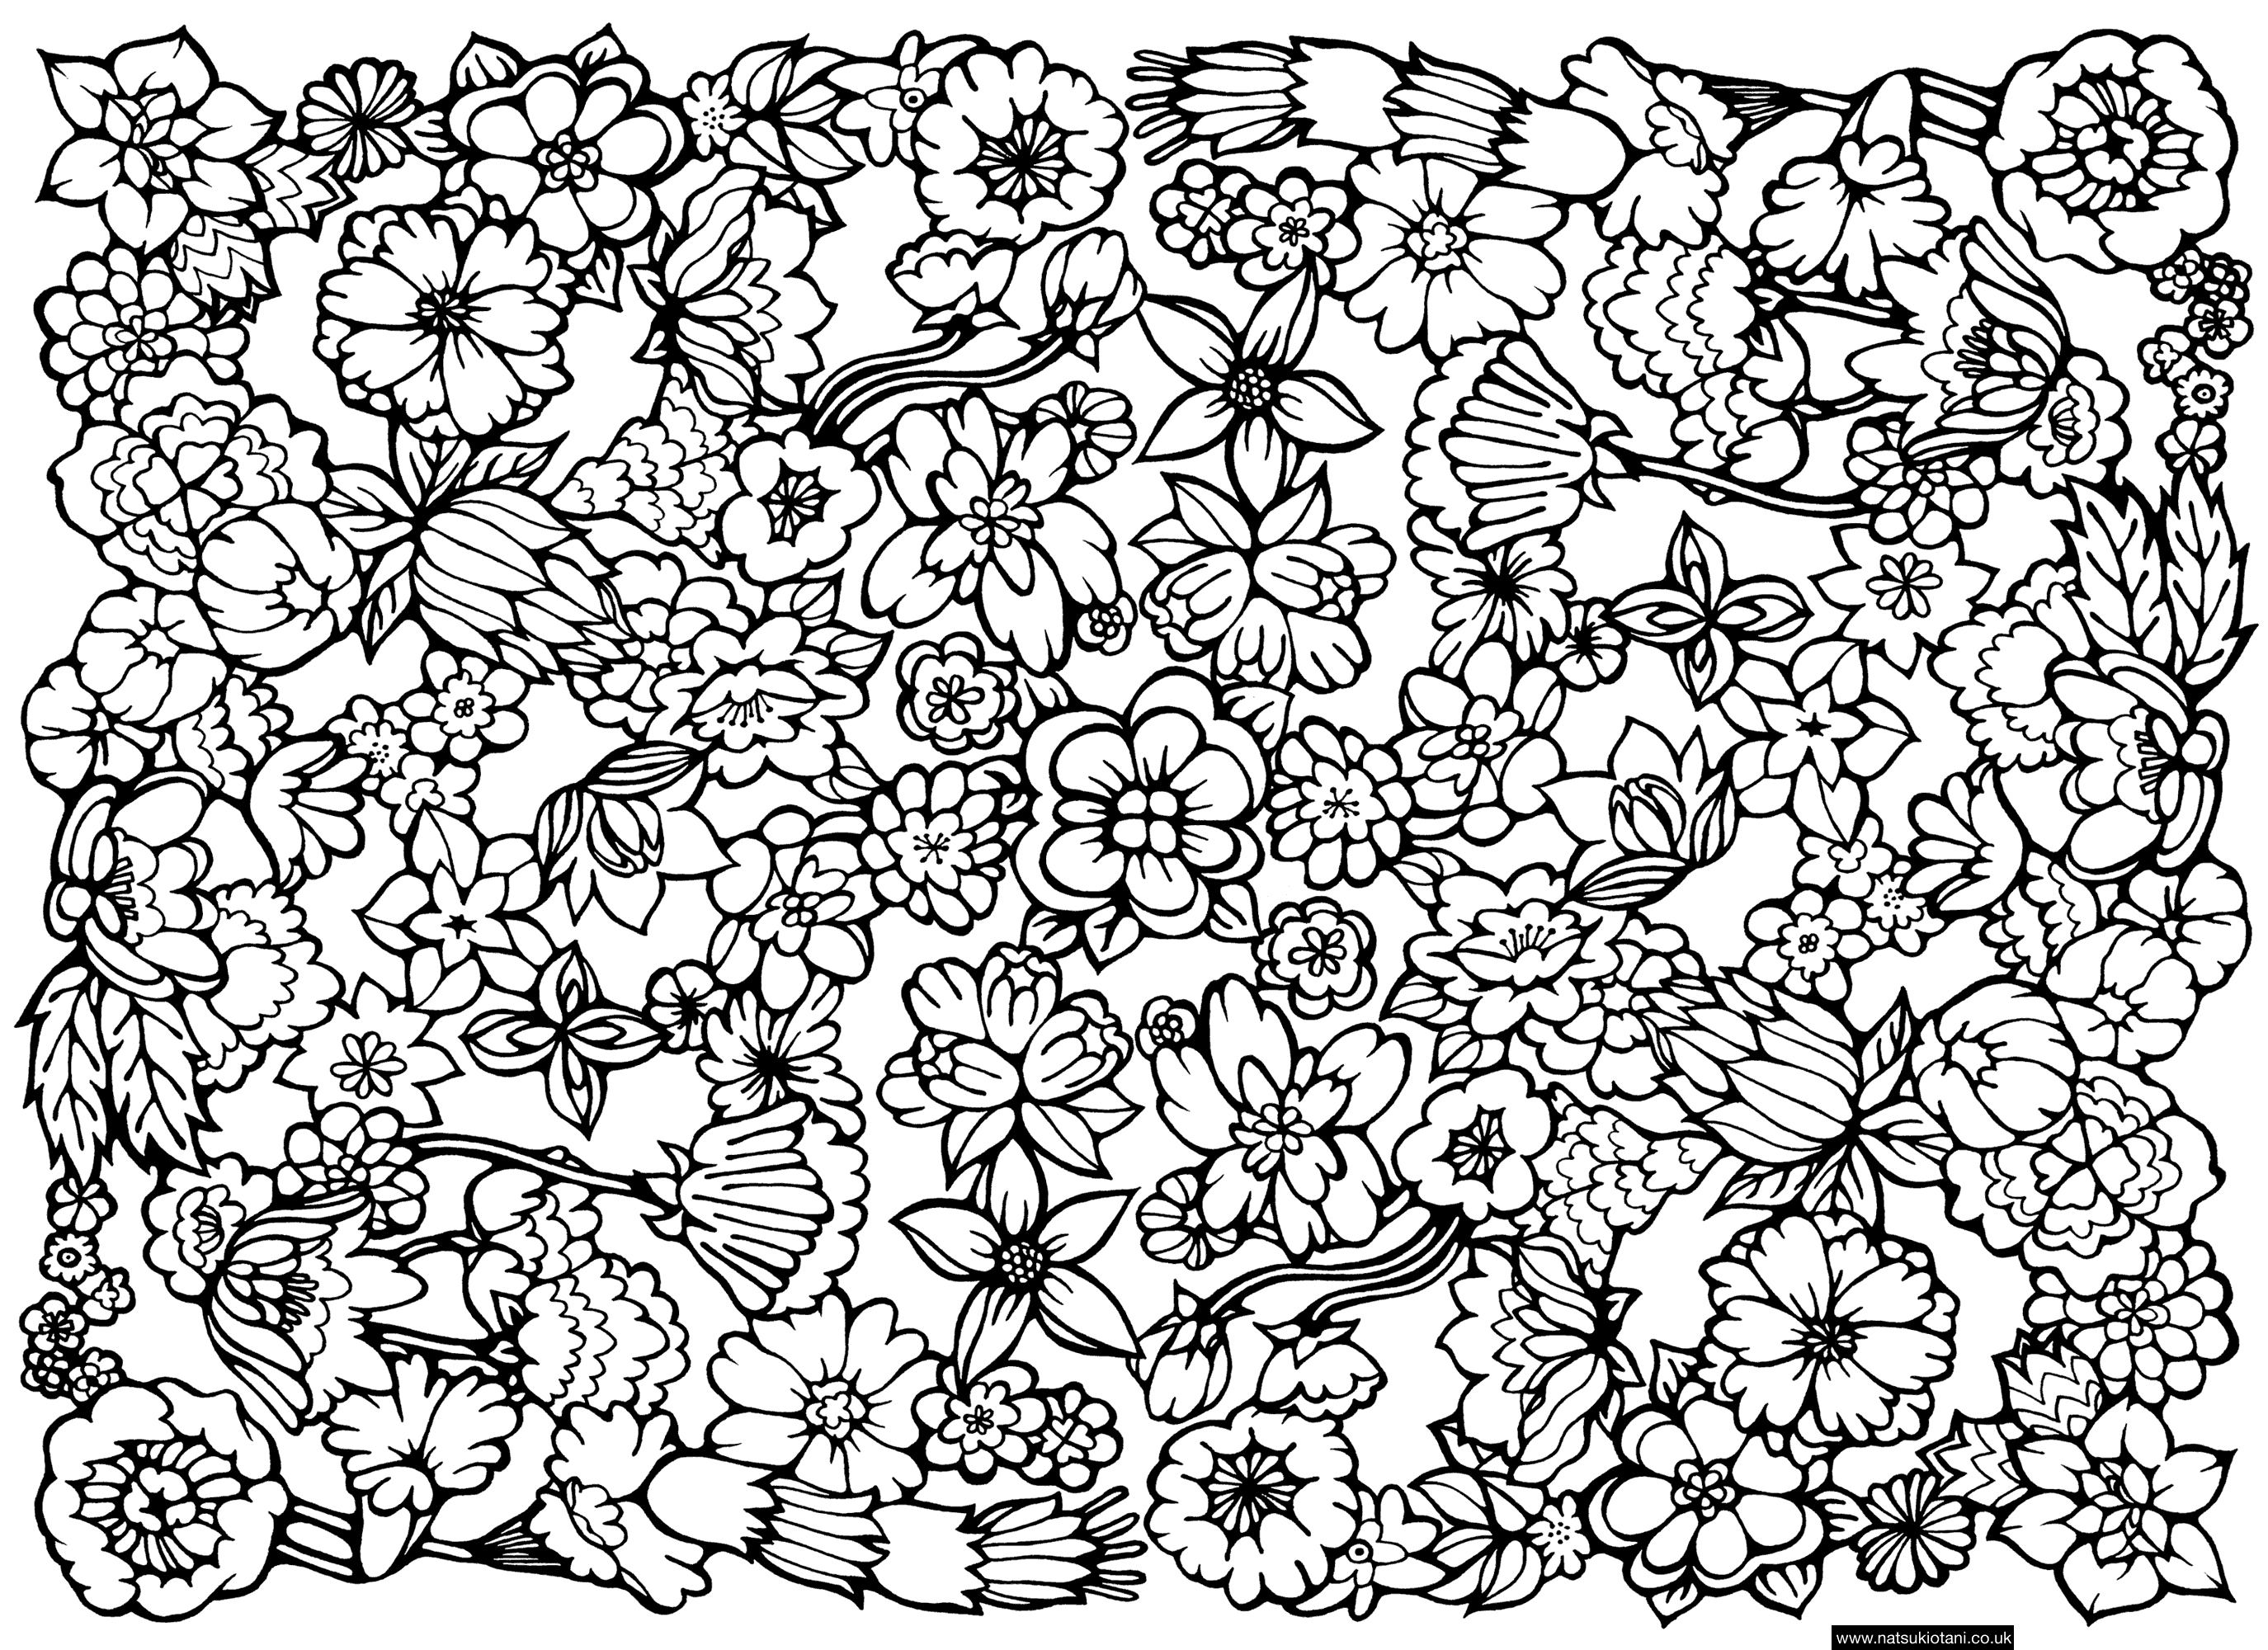 hard coloring pages for free - photo#17